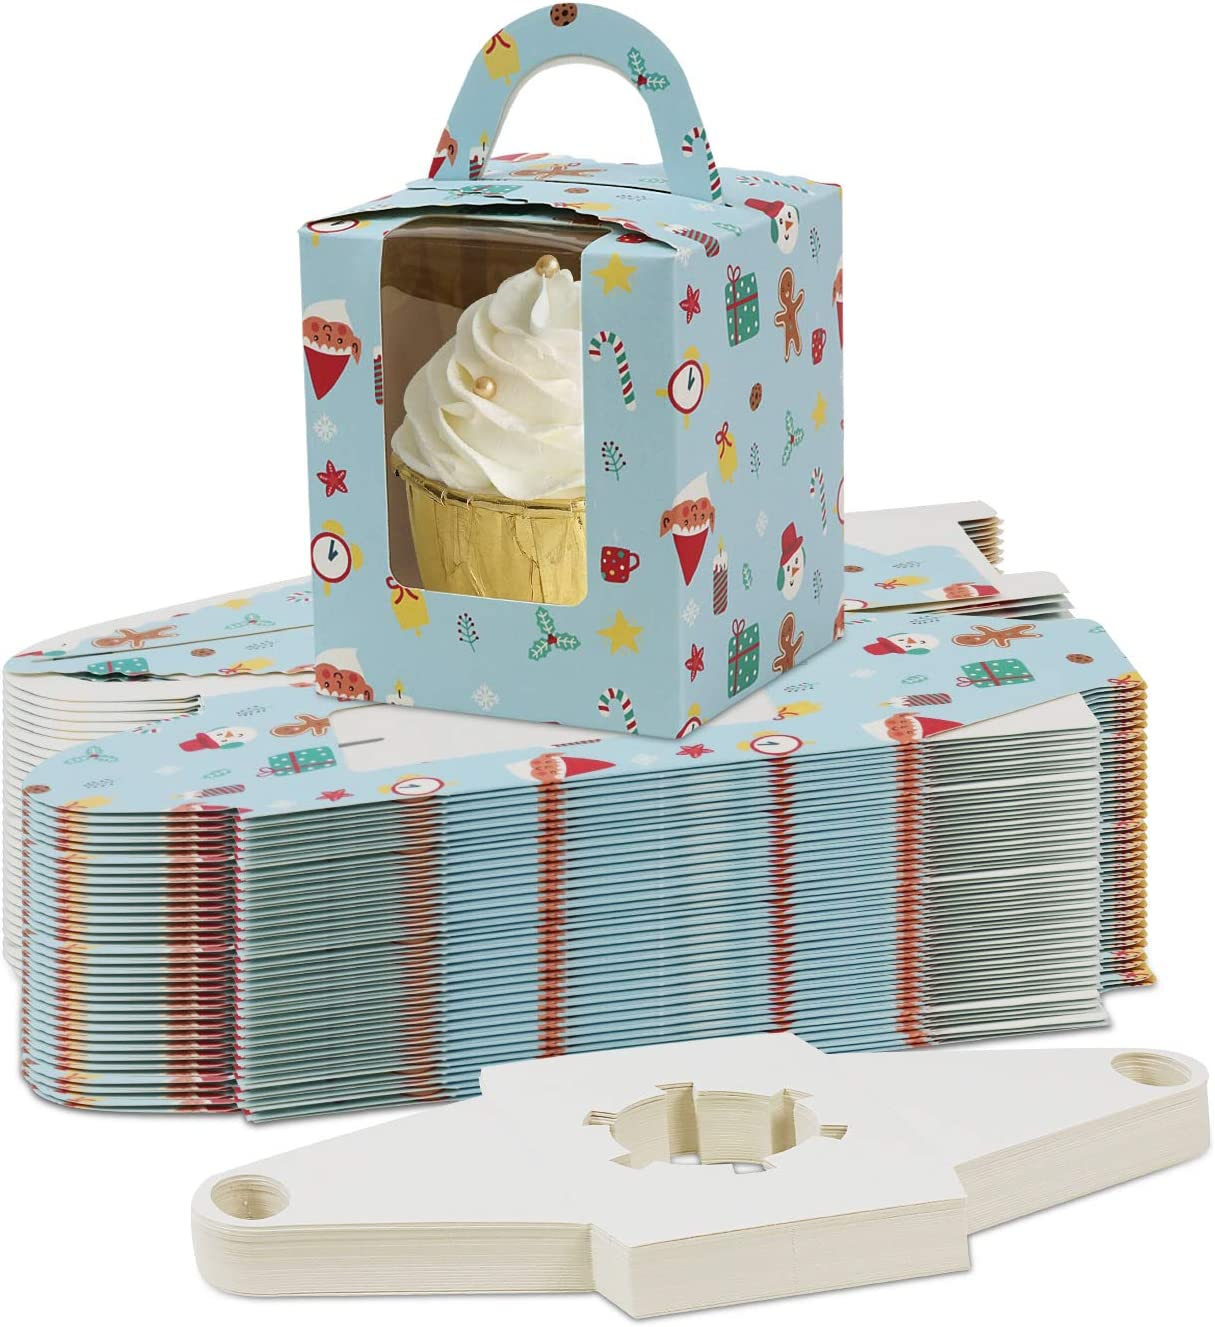 Christmas Cupcake Containers Single Paper Cupcake Box Cupcake Carrier Cupcake Bakery Boxes Portable Individual Gift Muffin Cupcake Box Small Cake Box with Window Handle Insert 50Pcs